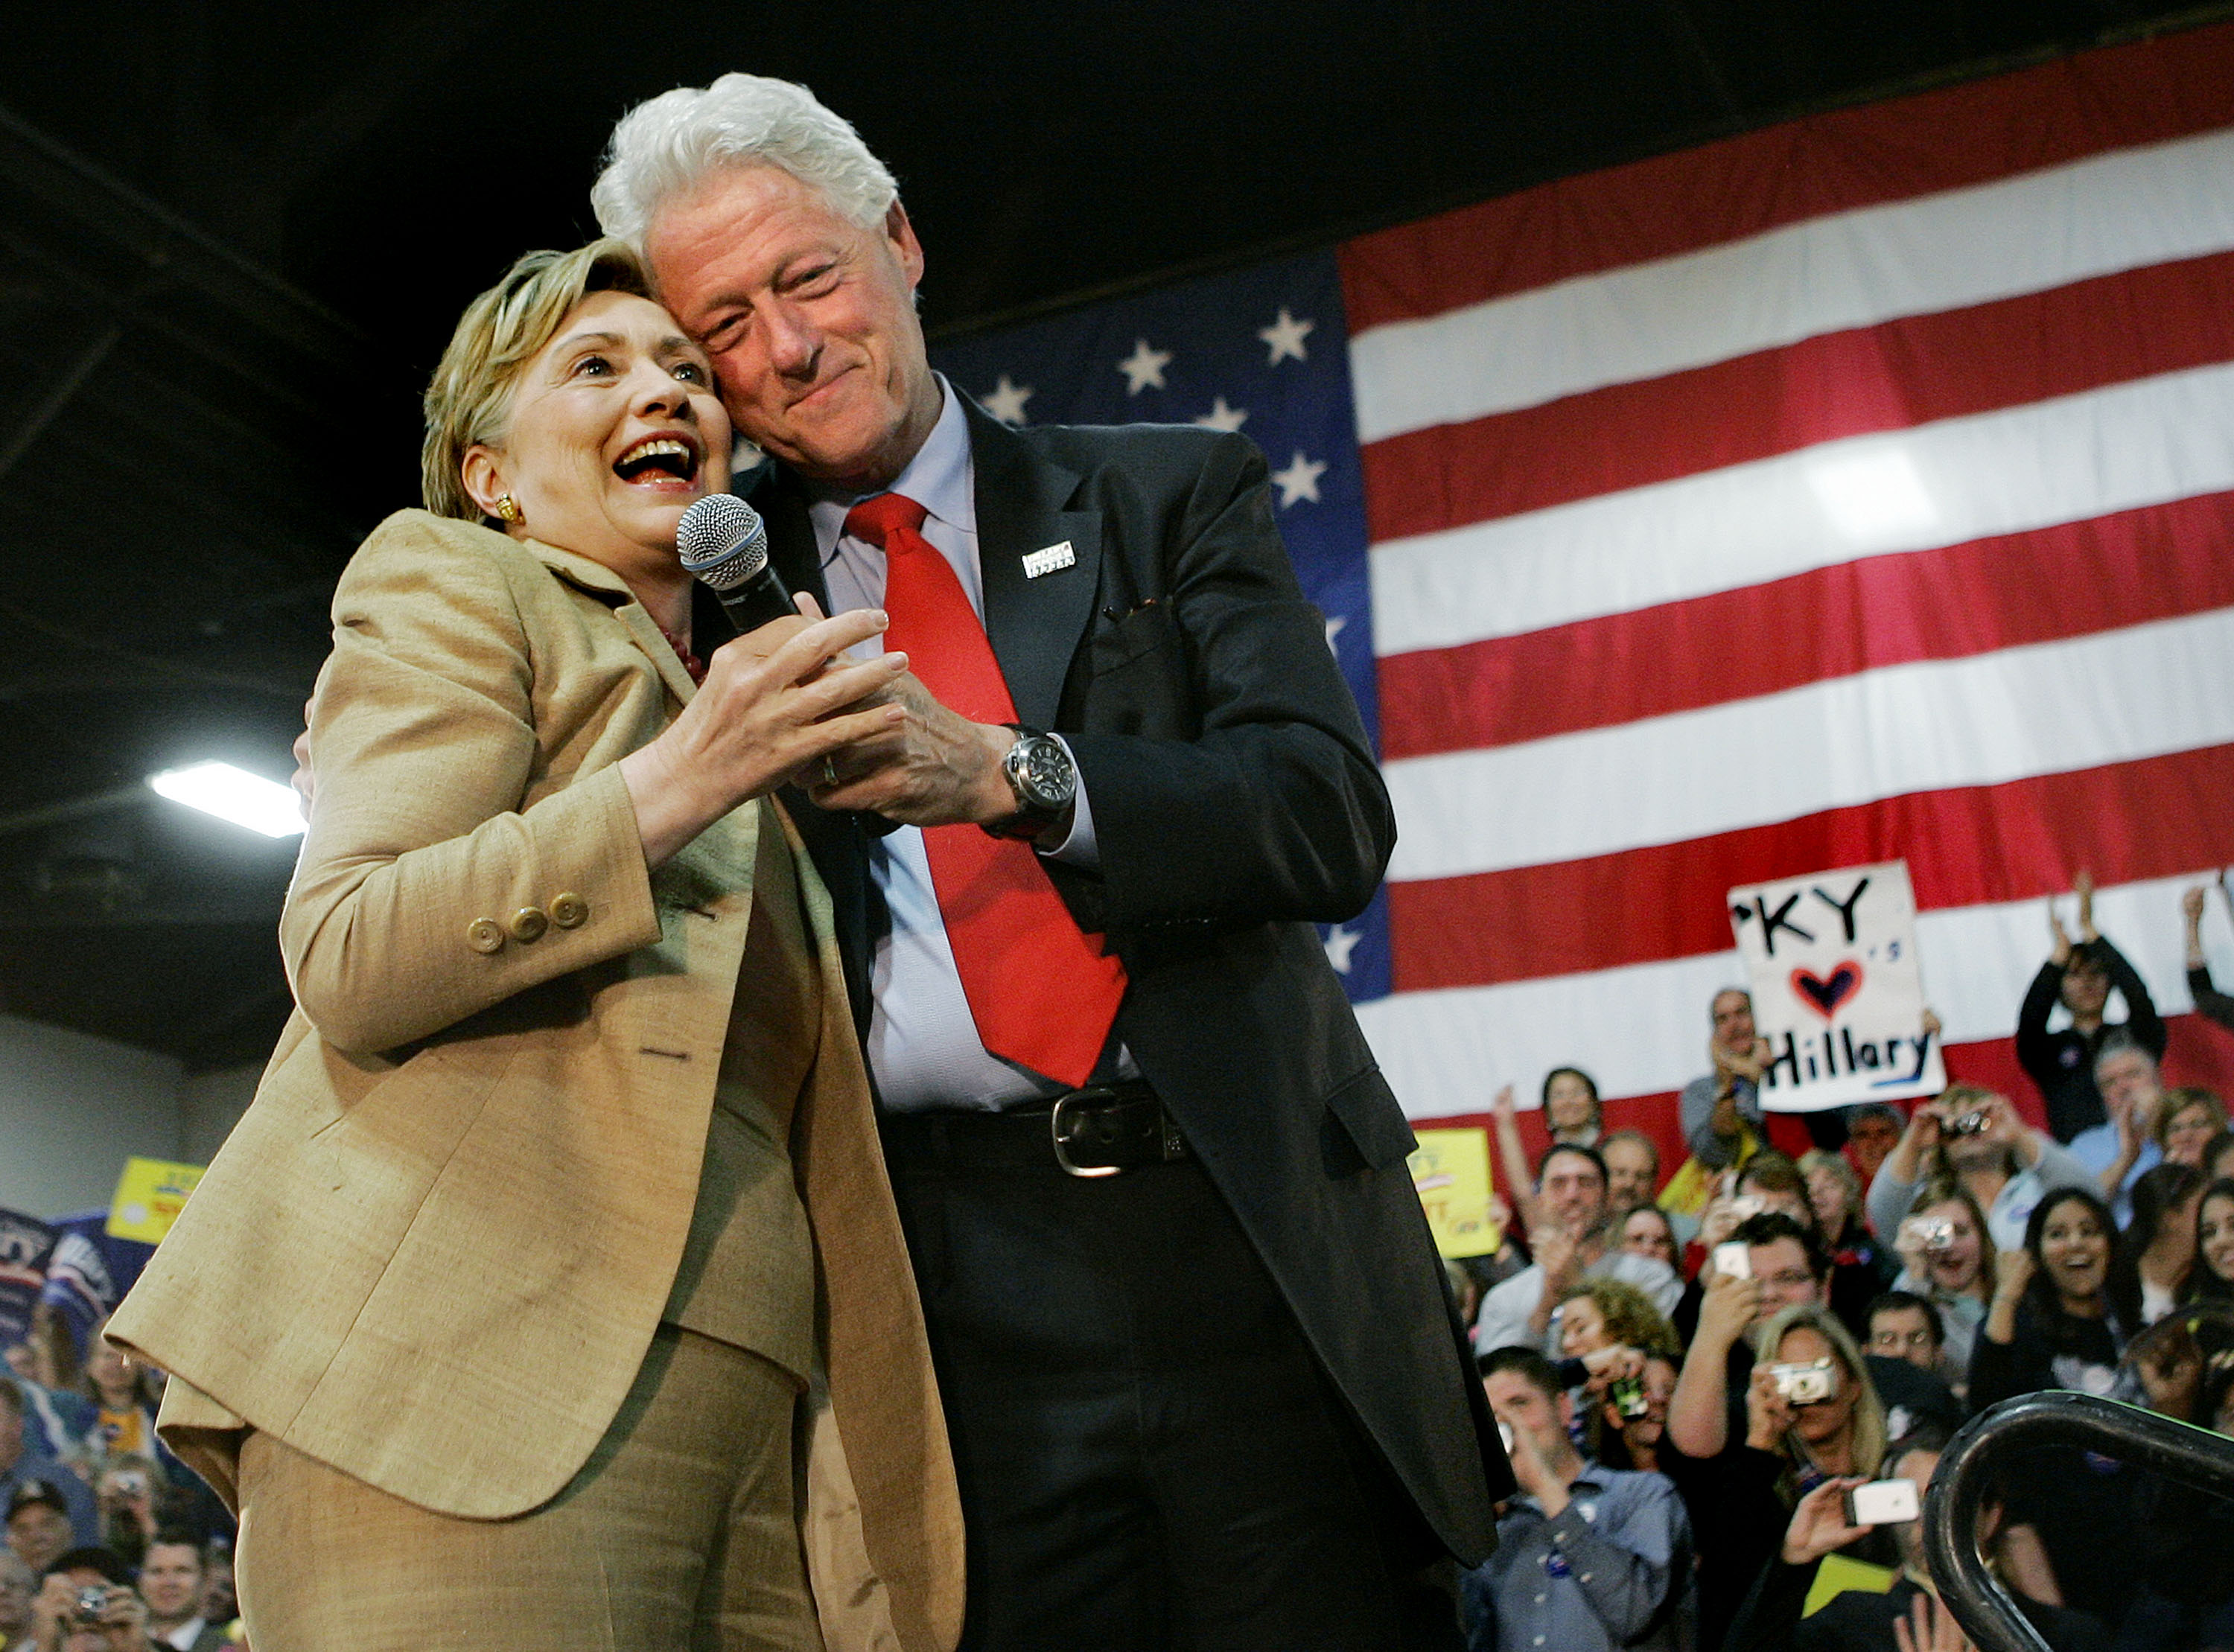 Democratic presidential hopeful Sen. Hillary Rodham Clinton, D-N.Y., is hugged by her husband, former President Bill Clinton as he introduces her during a campaign rally in Louisville, Ky. on May 19, 2008.